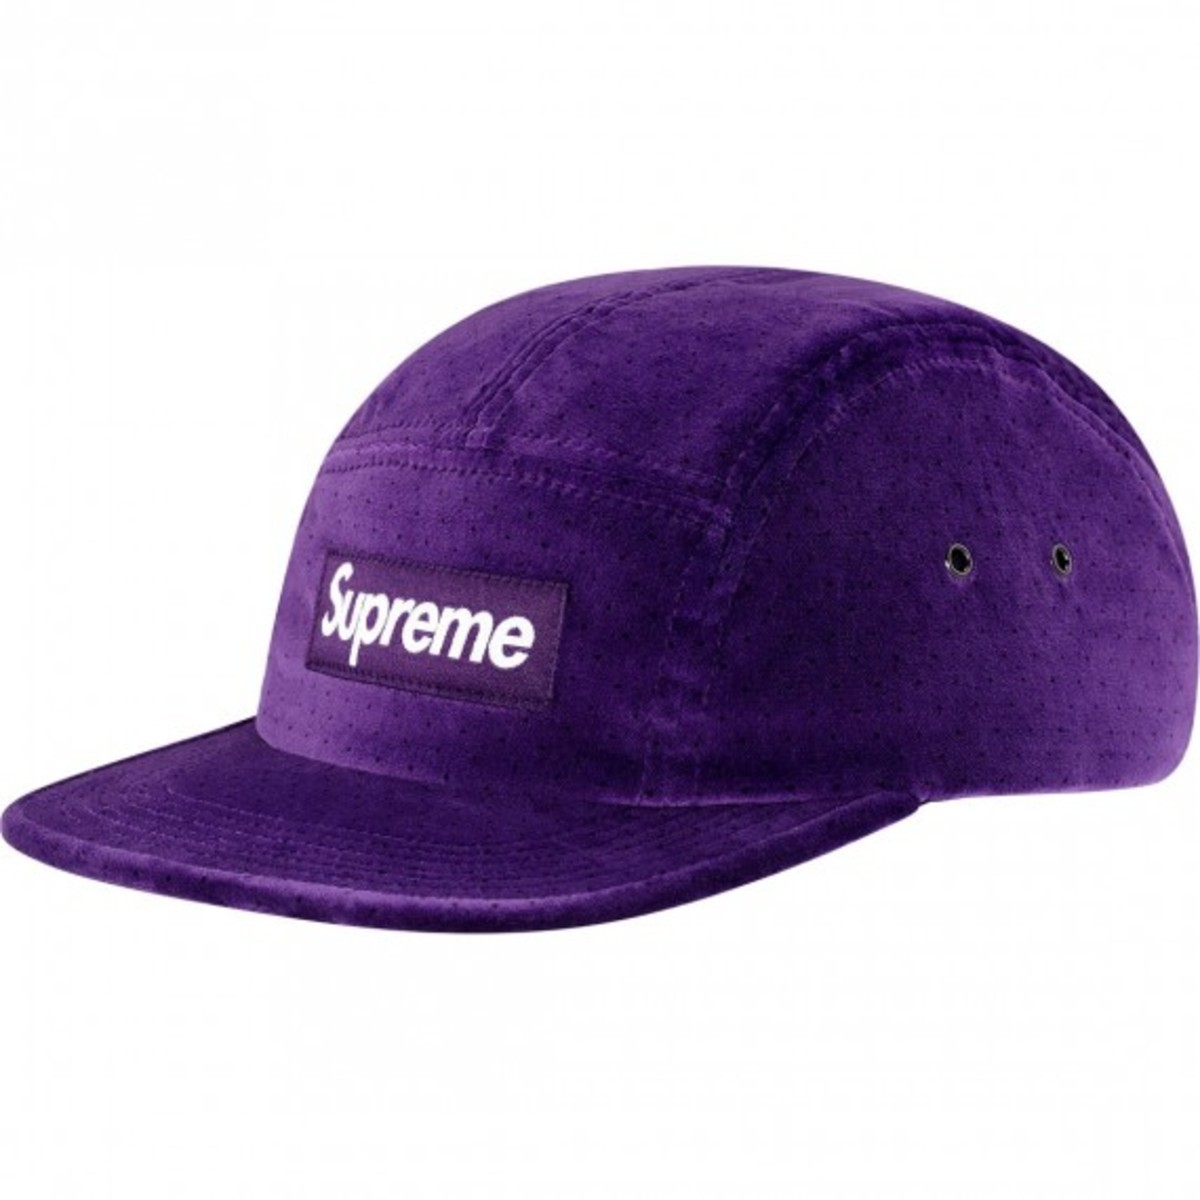 supreme-fall-winter-2011-collection-available-now-22